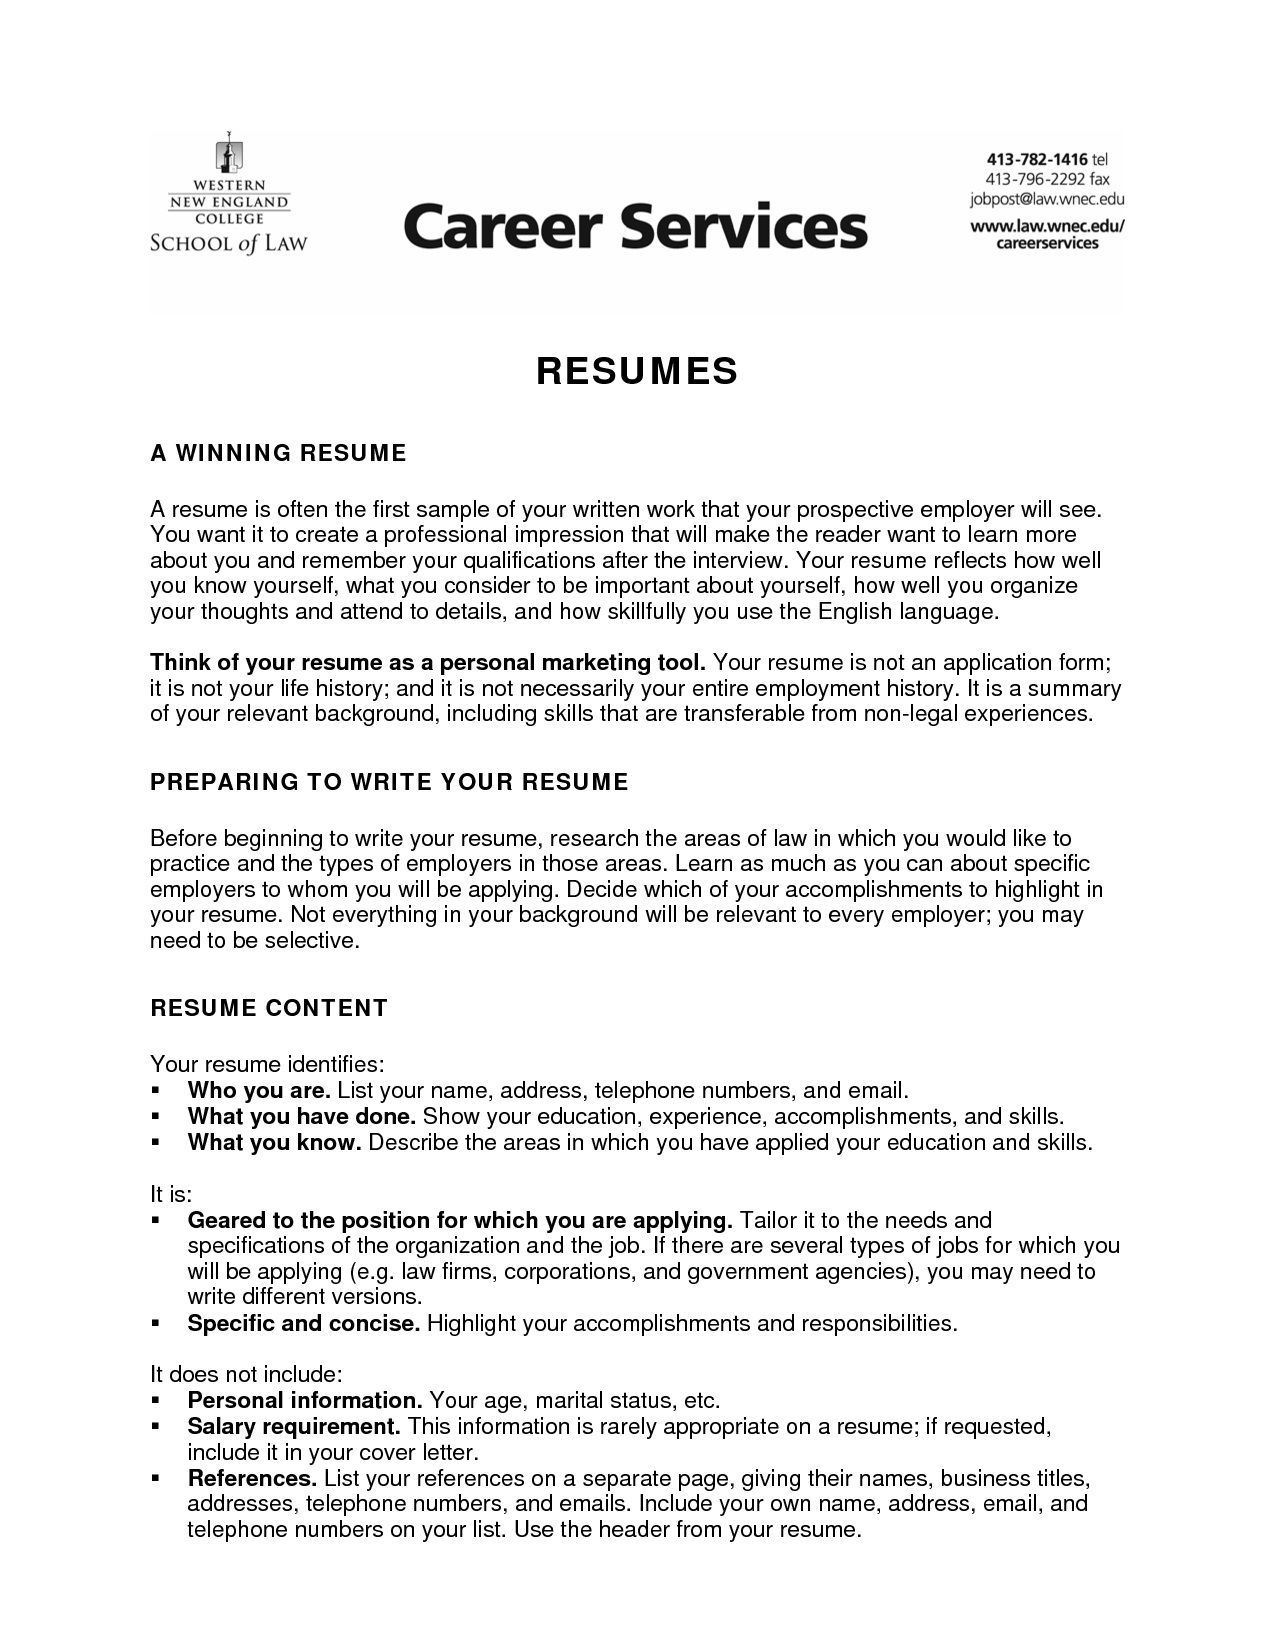 Sample Resume Objective For College Student #068 - http://topresume ...